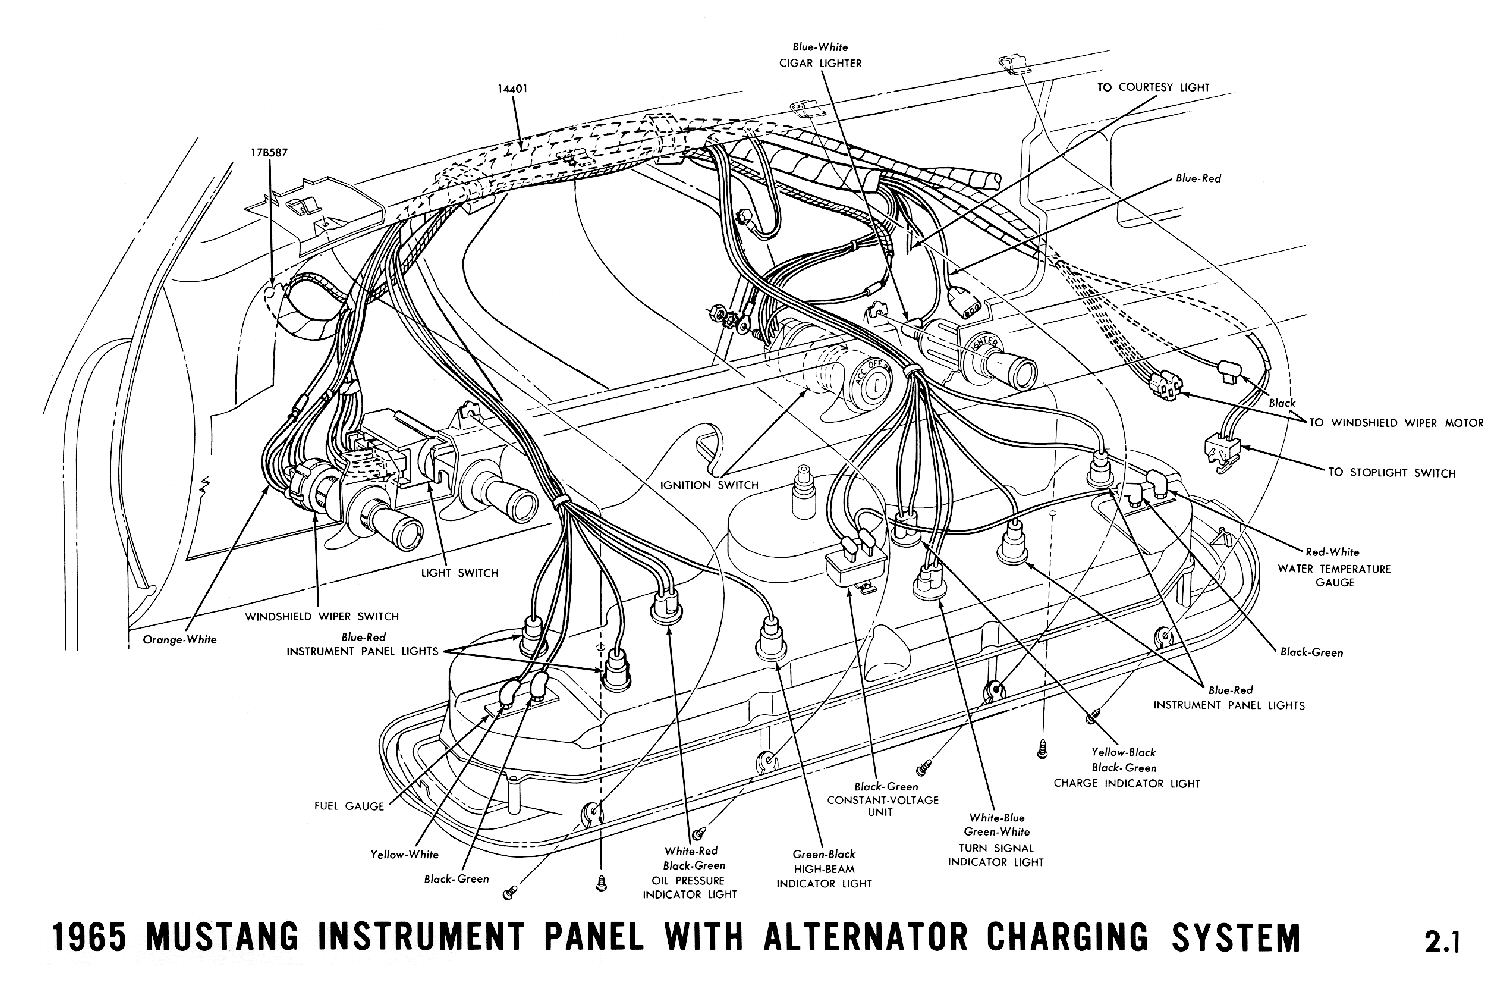 1965a 1965 mustang wiring diagrams average joe restoration 65 mustang alternator wiring diagram at n-0.co